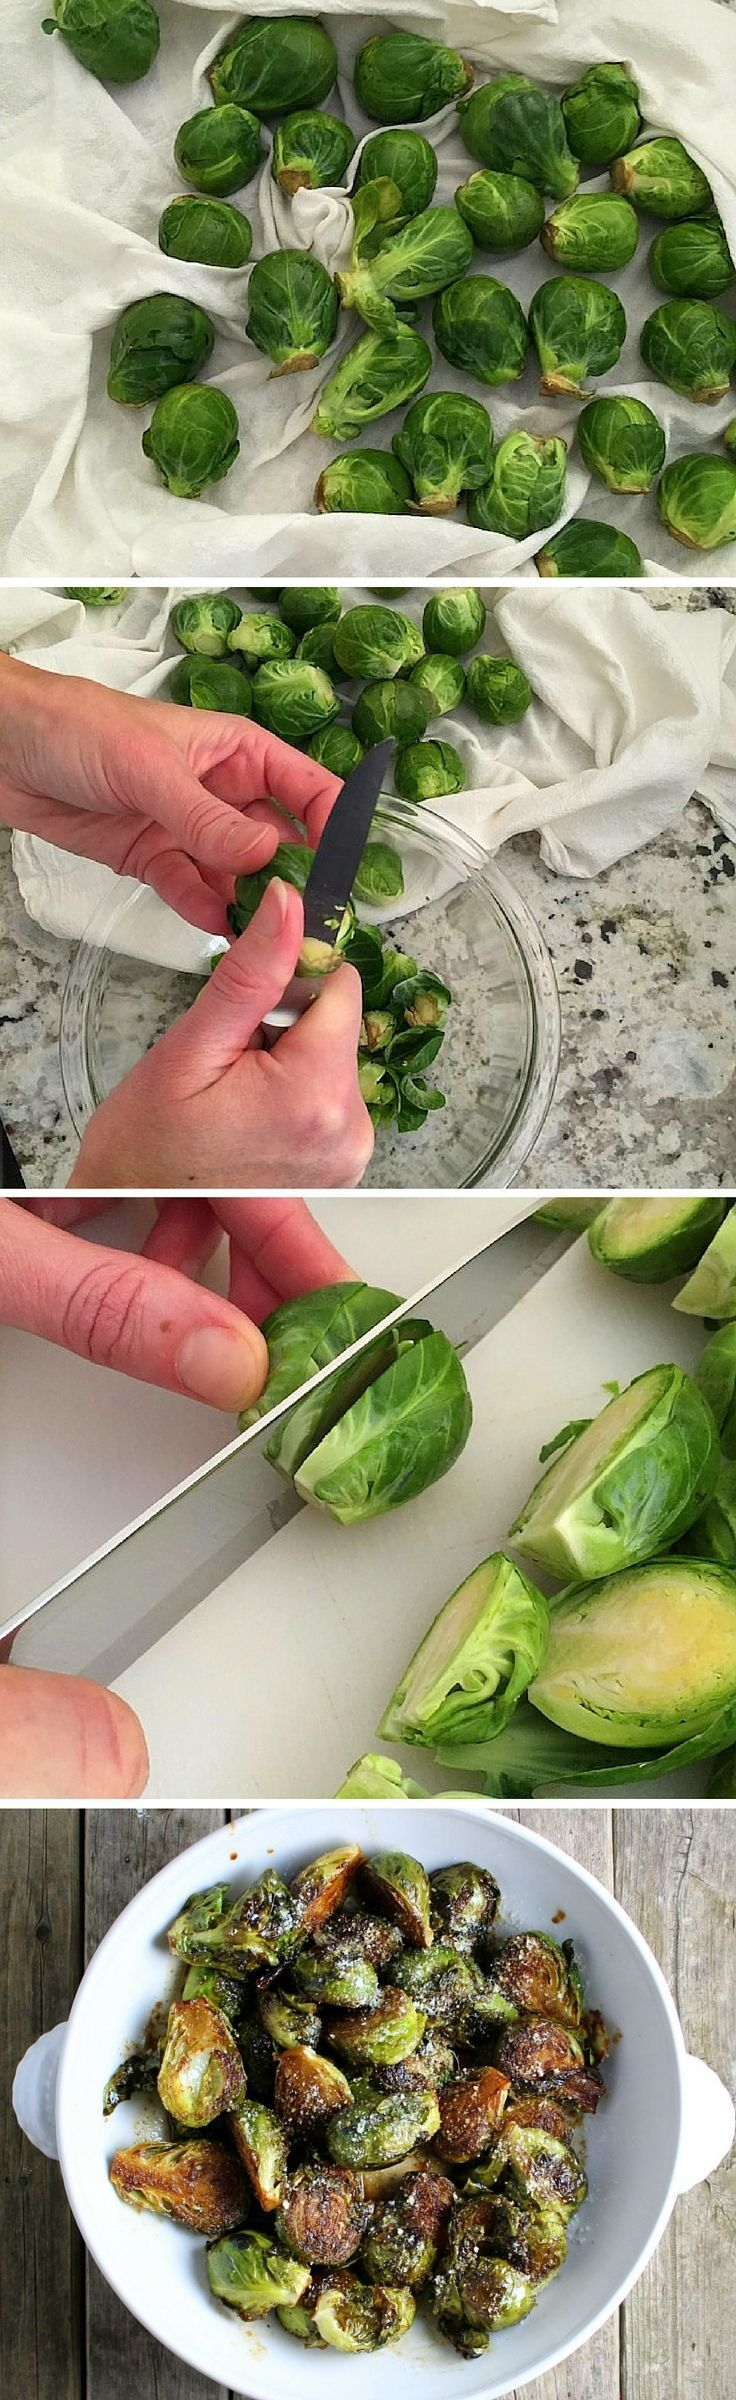 Super-easy recipe for balsamic glazed Brussels sprouts. Fast, delicious, & healthy! http://tasteandsee.com